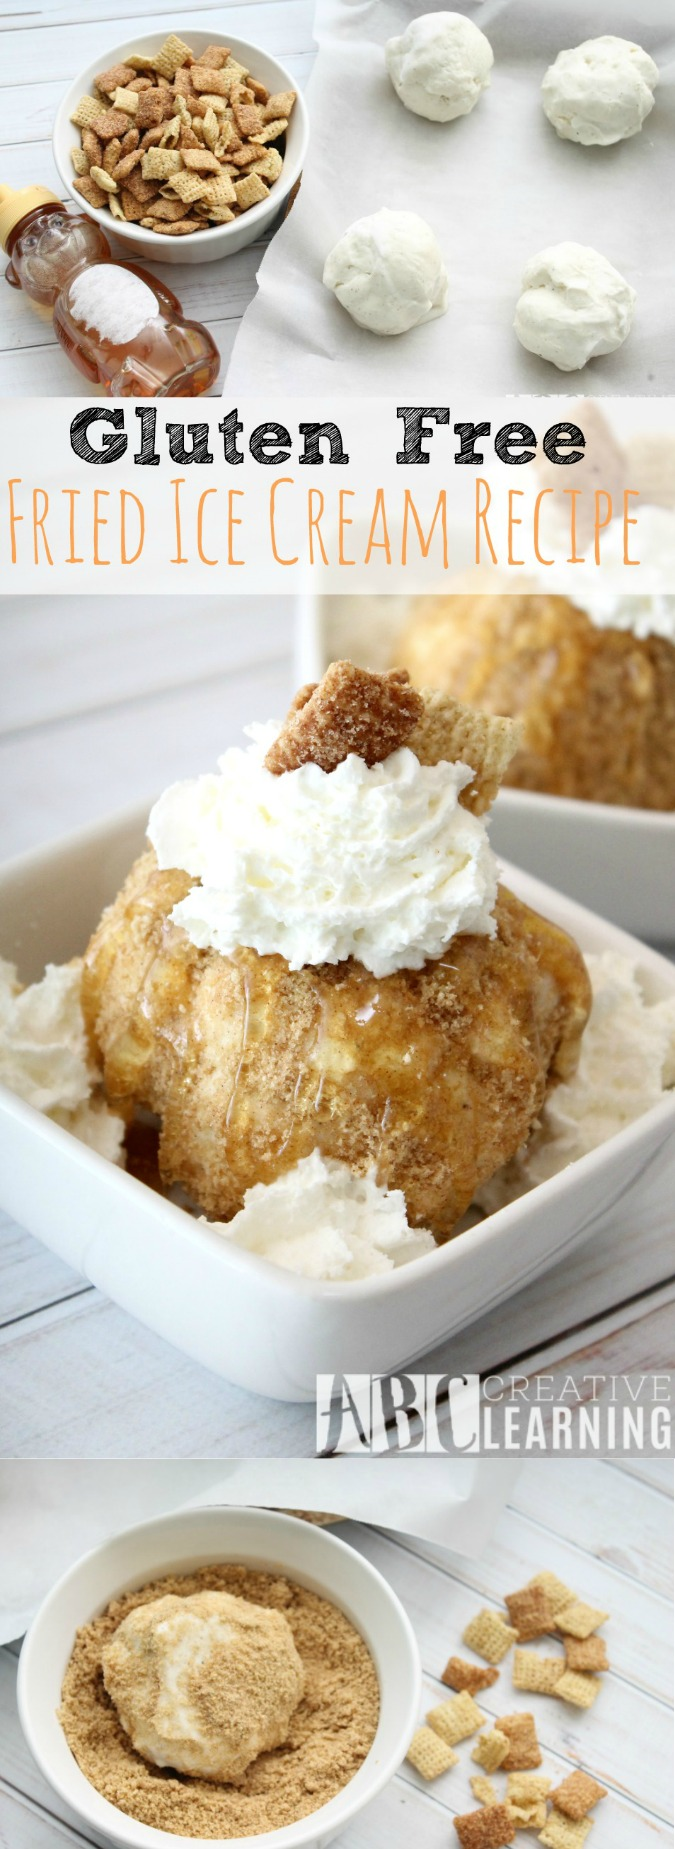 The perfect summer treat! This easy and delicious Gluten Free Fried Ice Cream Recipe is exactly what you need! - simplytodaylife.com